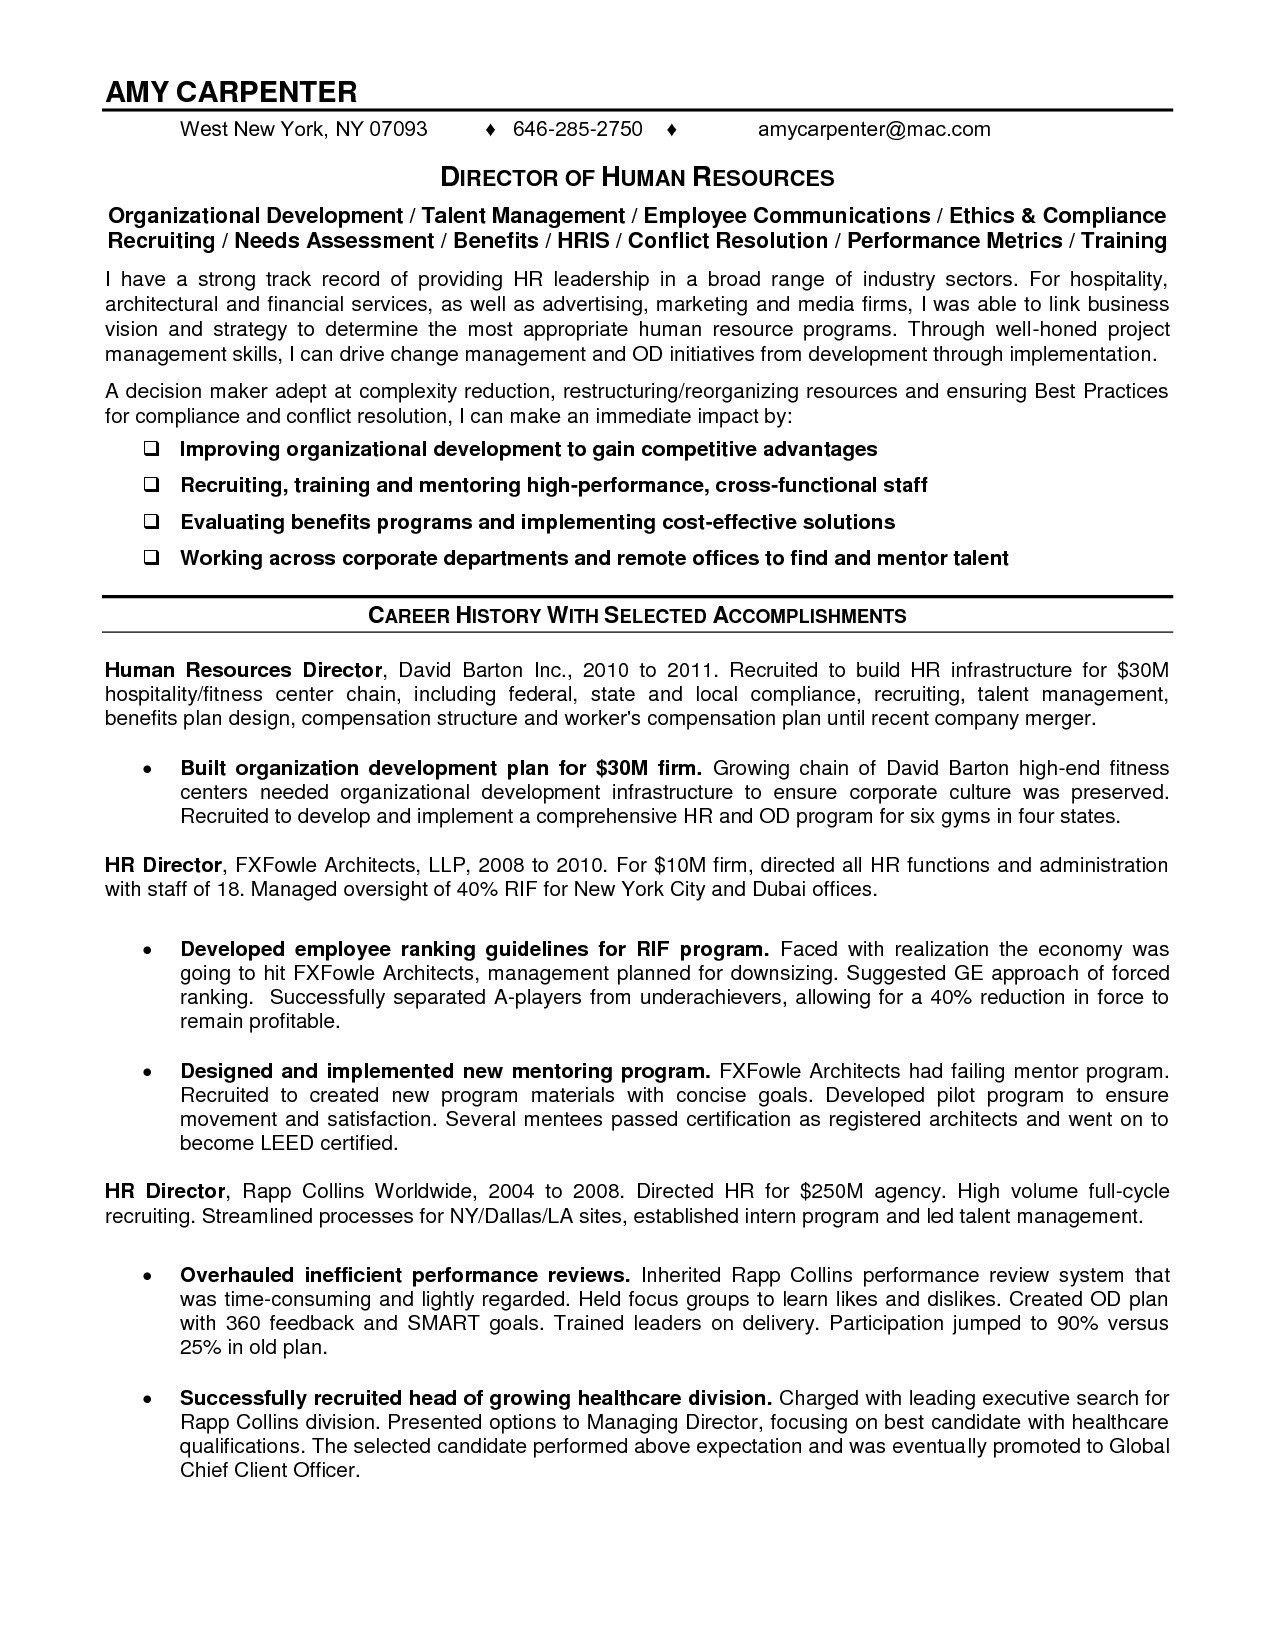 Resume Template for Undergraduate Student - 23 Resume Examples for College Students